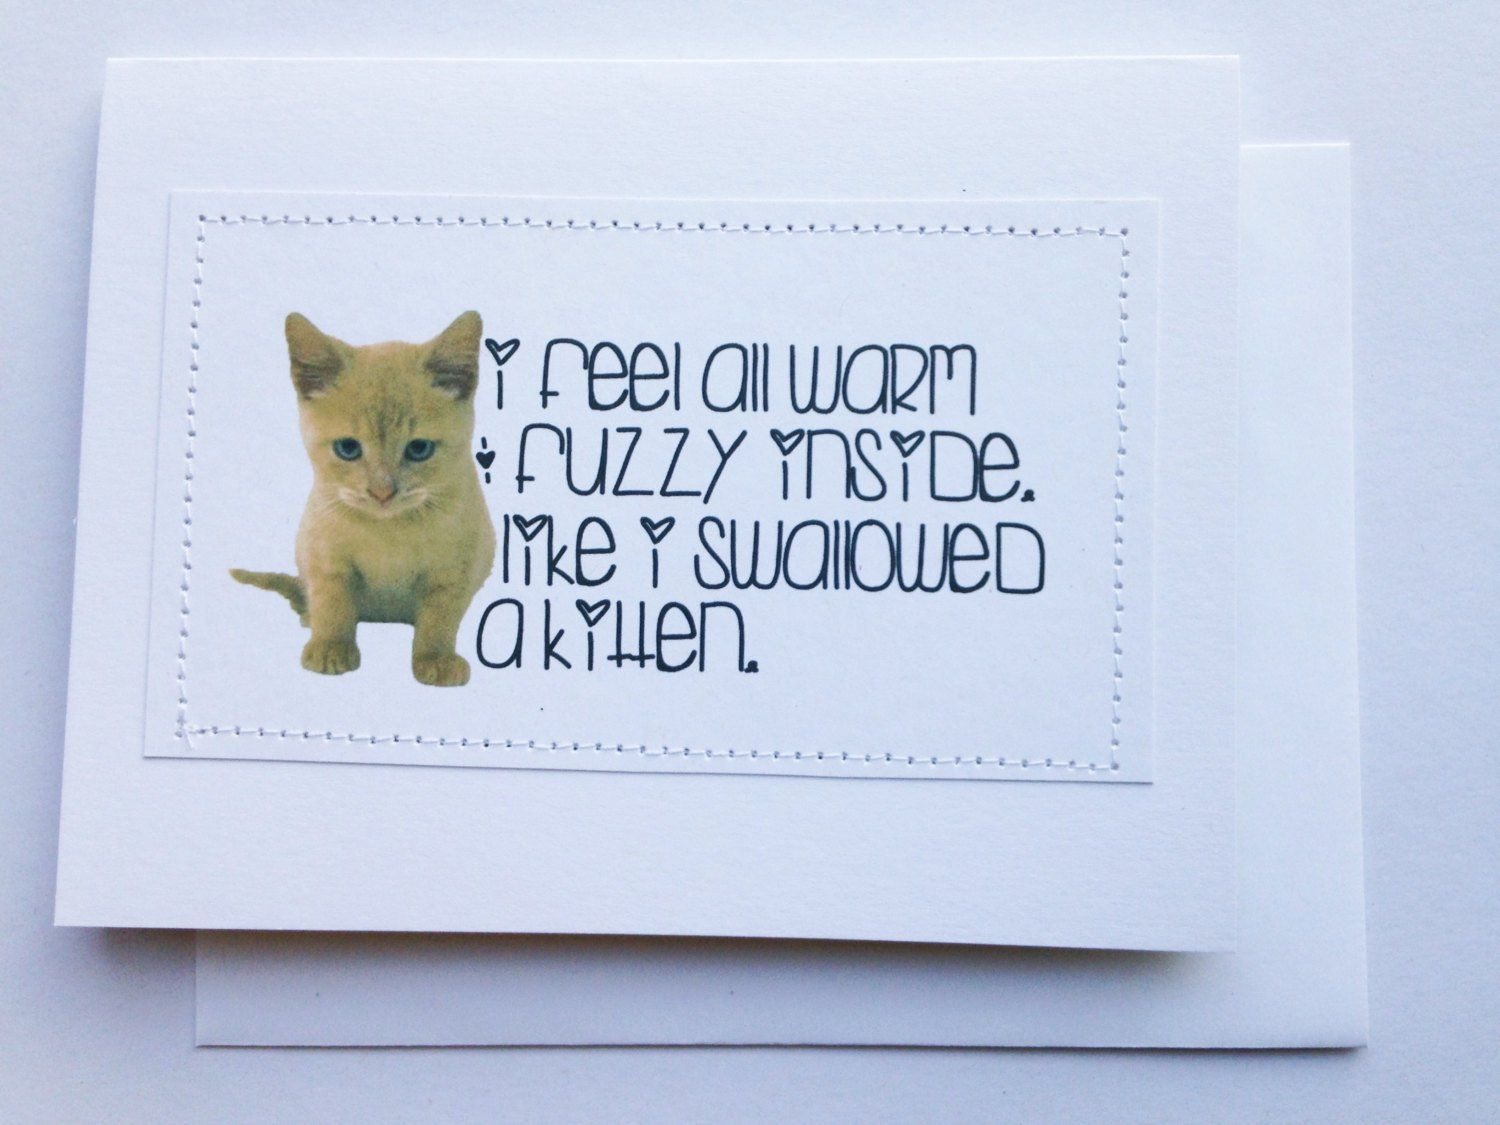 Funny Kitty Cat Card I Feel All Warm And Fuzzy Inside Like I Etsy Cat Cards Funny Cats Cards